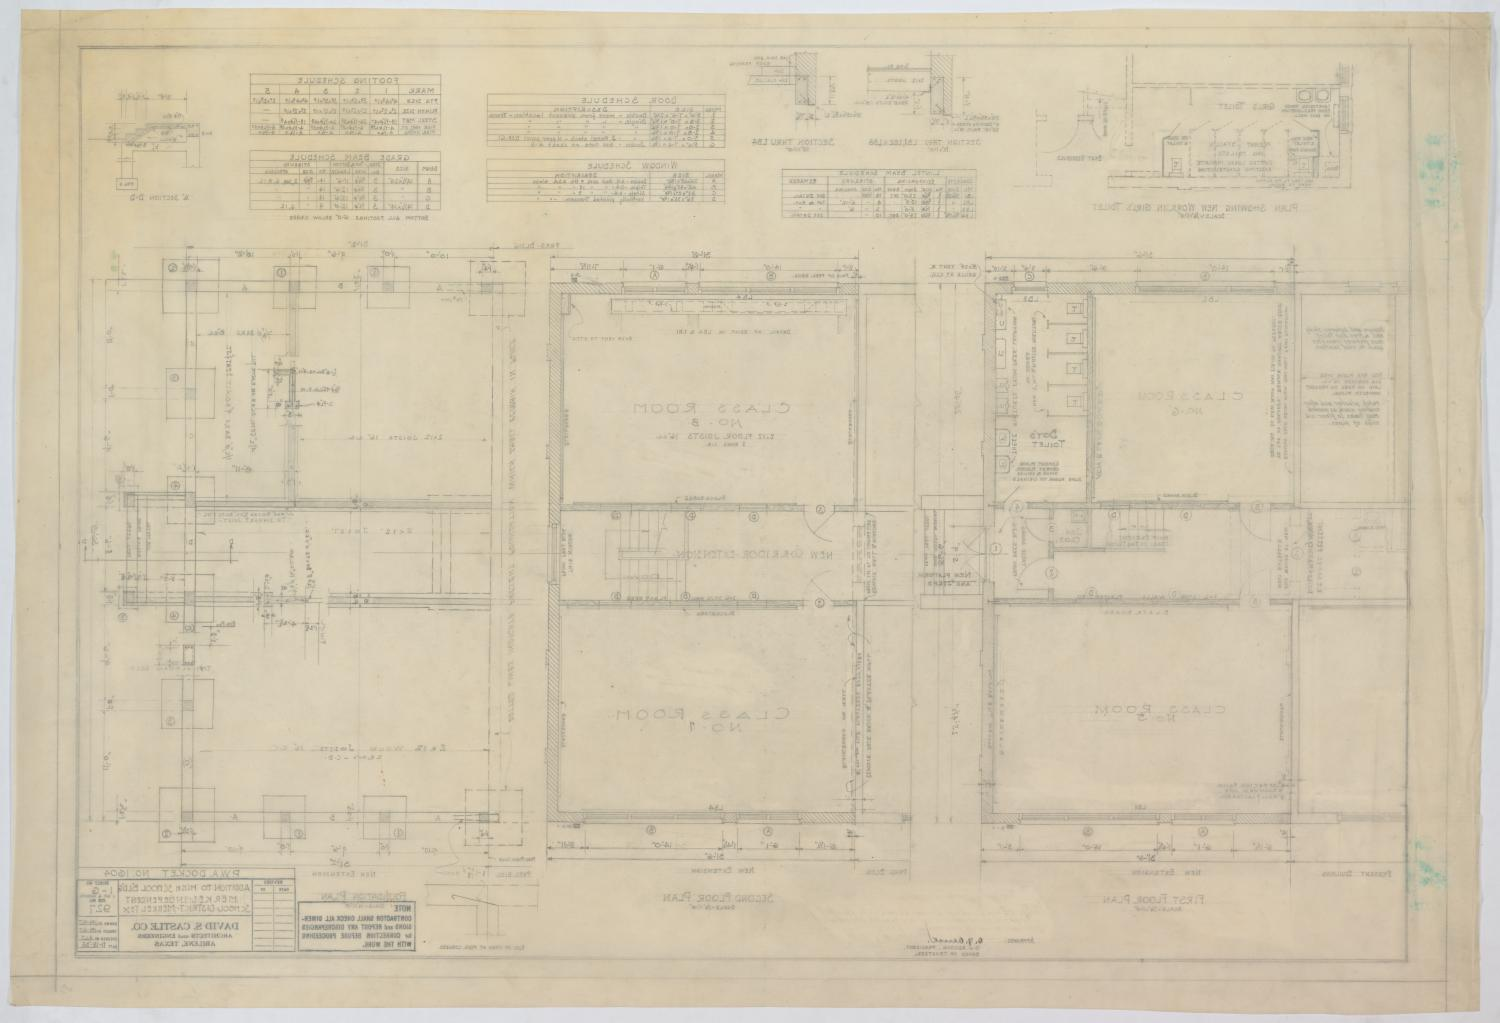 High School Building Addition, Merkel, Texas: Floor Plans and Schedules                                                                                                      [Sequence #]: 2 of 2